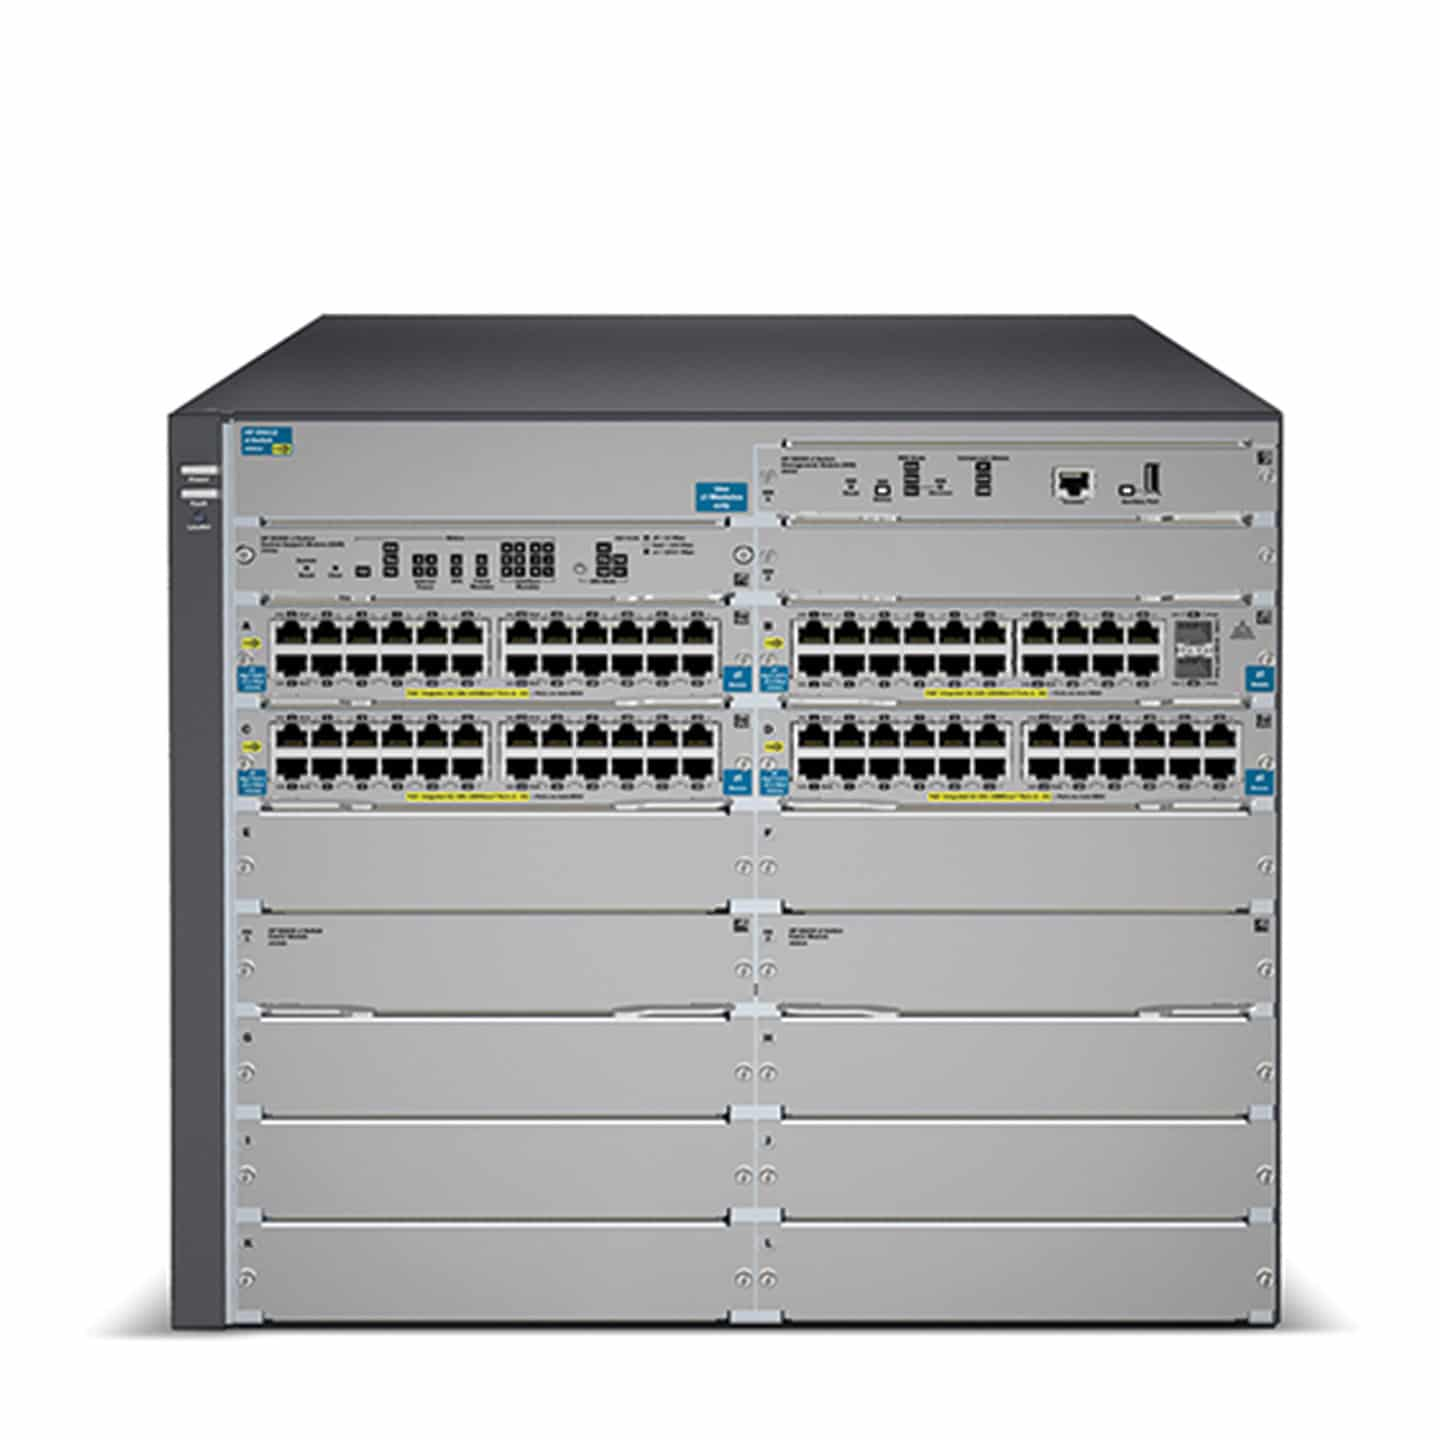 HPE Networking 8200 zl Switches